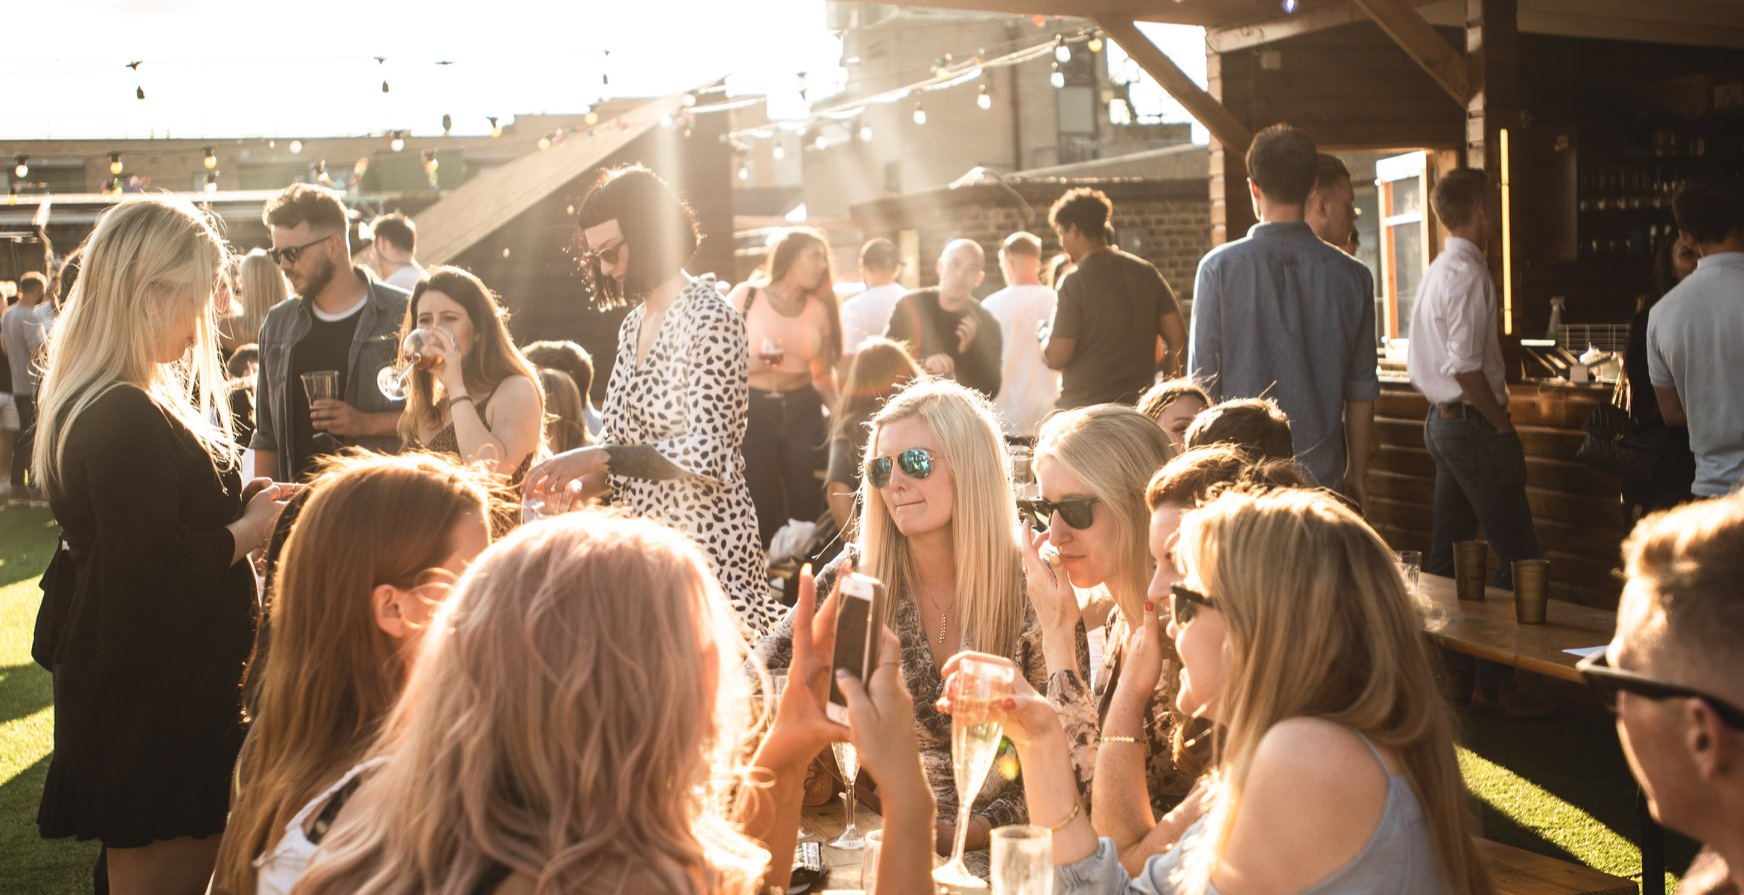 Byday Bynight: Brixton's Winter Rooftop & Club party